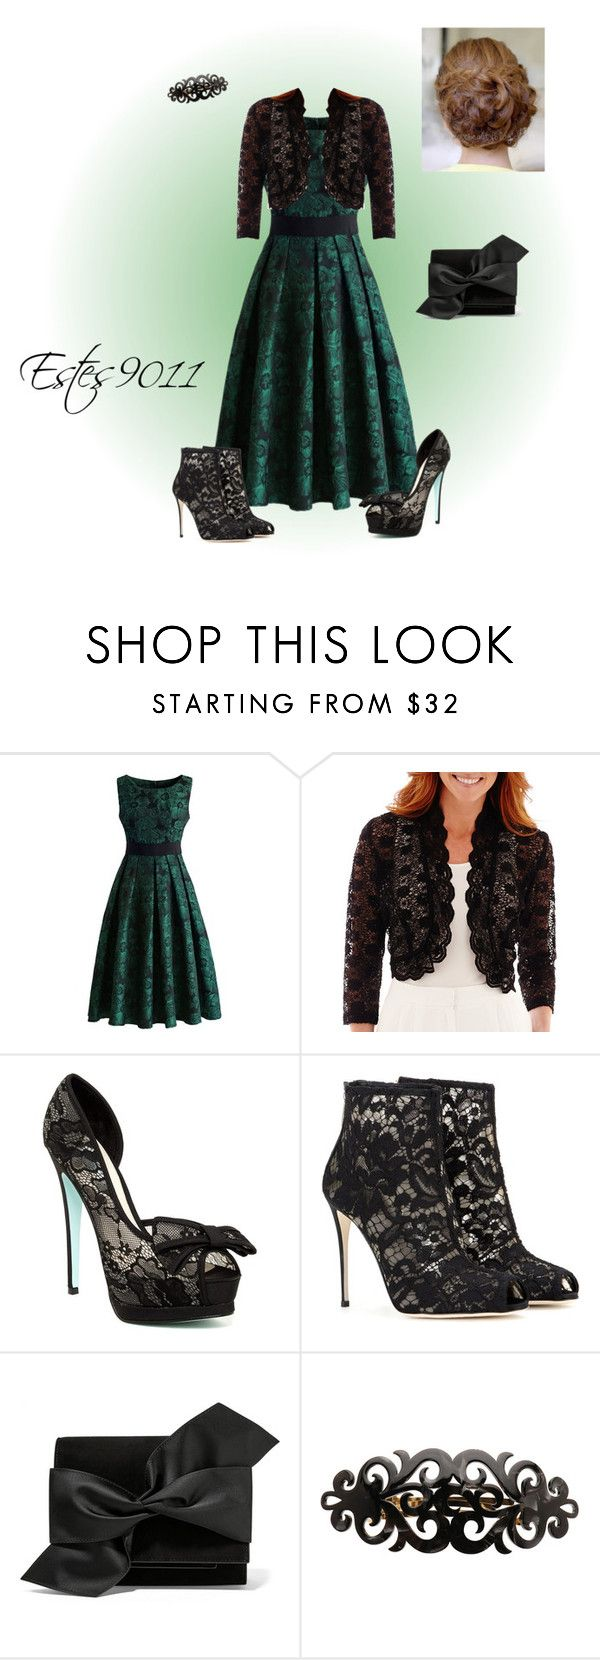 """Grace Lace"" by estes9011 ❤ liked on Polyvore featuring moda, Chicwish, R & M Richards, Betsey Johnson, Dolce&Gabbana, Victoria Beckham, France Luxe, women's clothing, women e female"